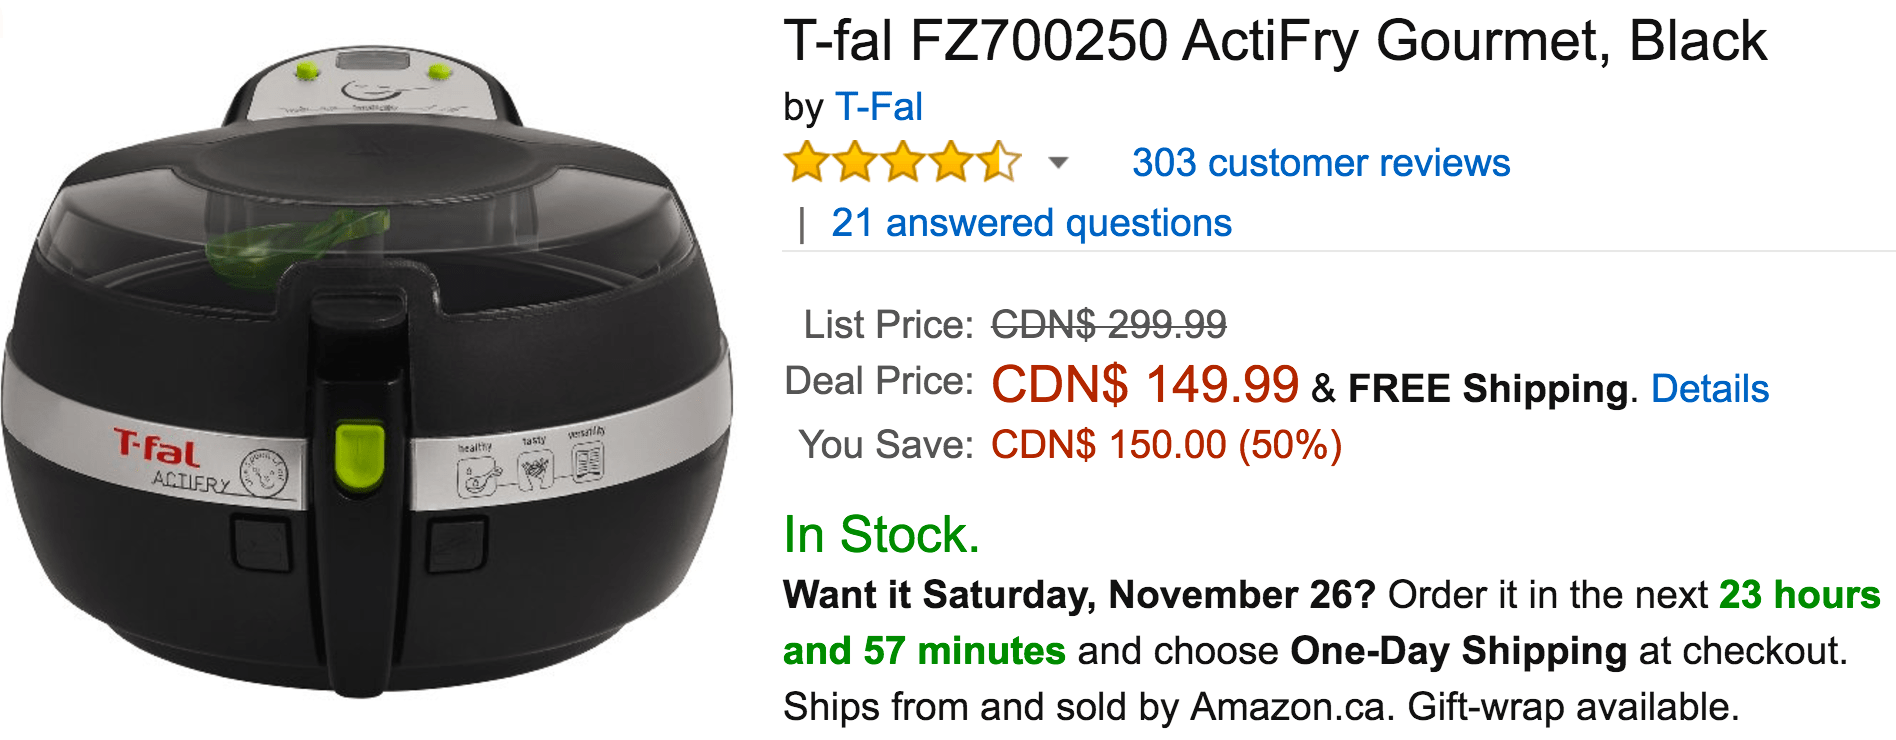 Amazon Canada Black Friday 2016 Deals: Save 50% Off T-fal ActiFry Gourmet, Black, Today for $149.99